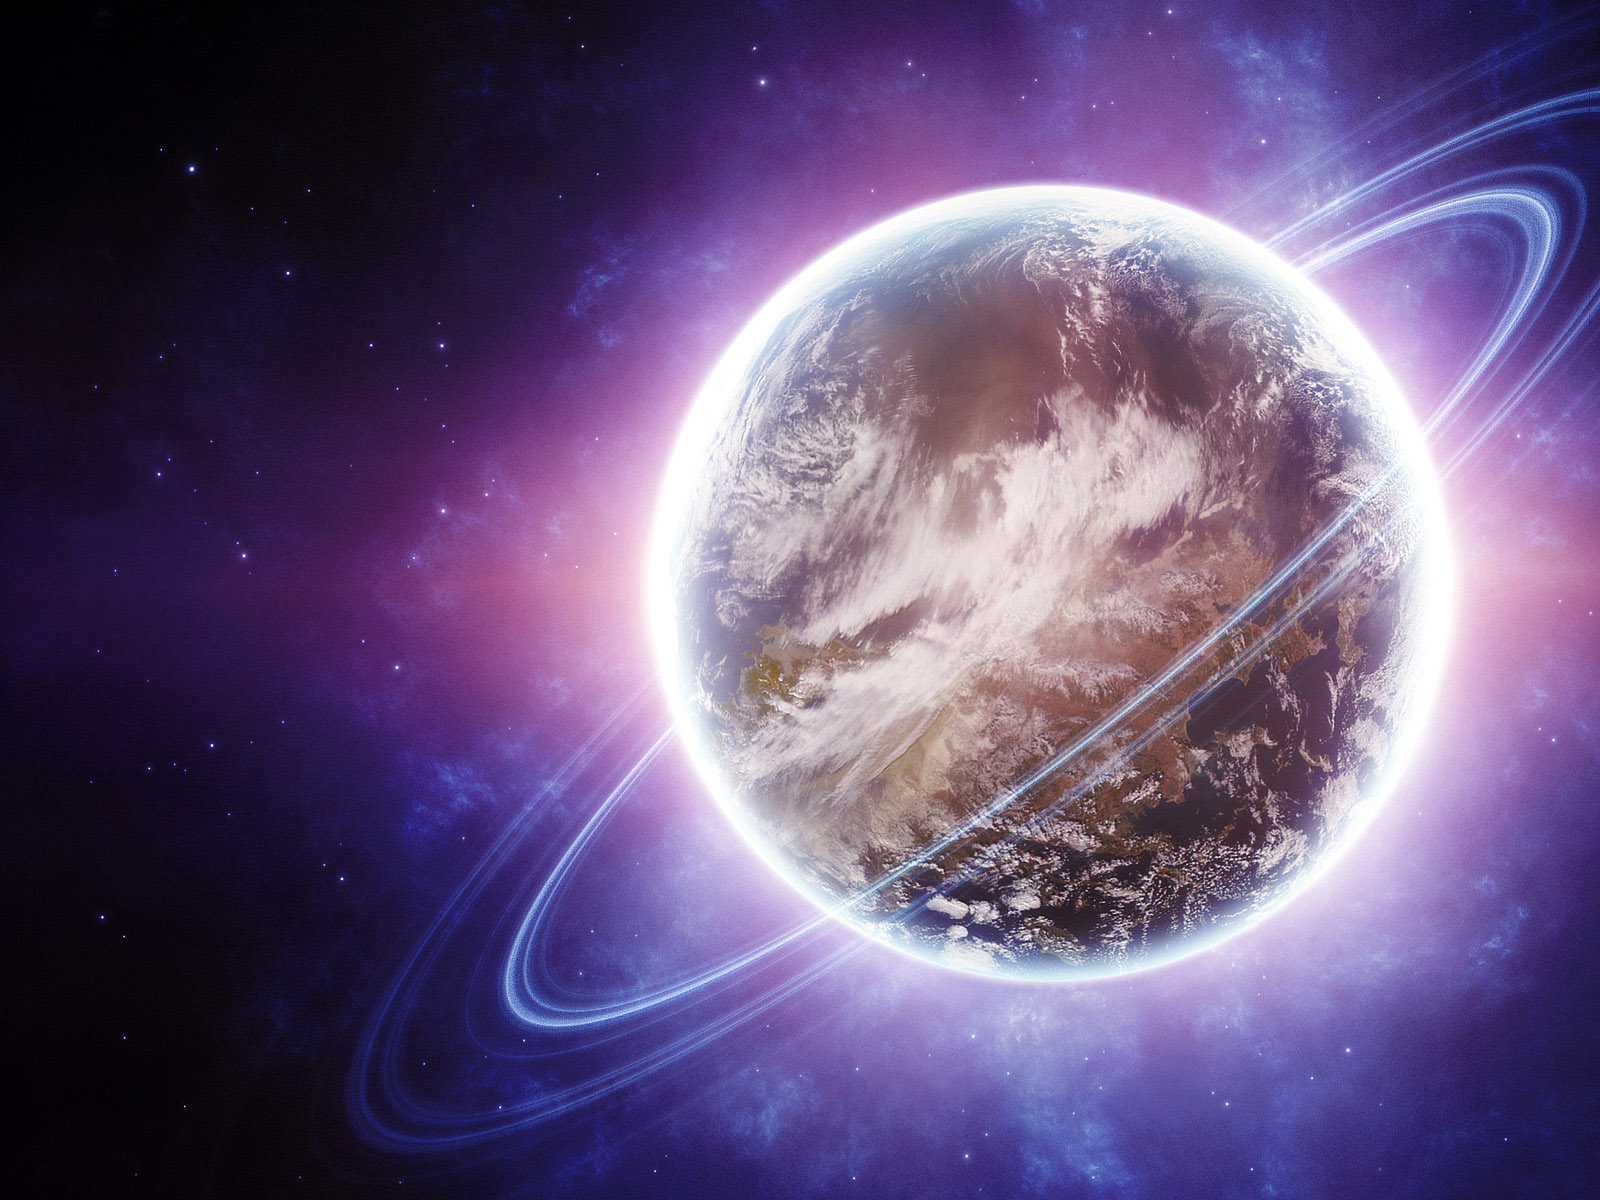 HD Planet Wallpaper